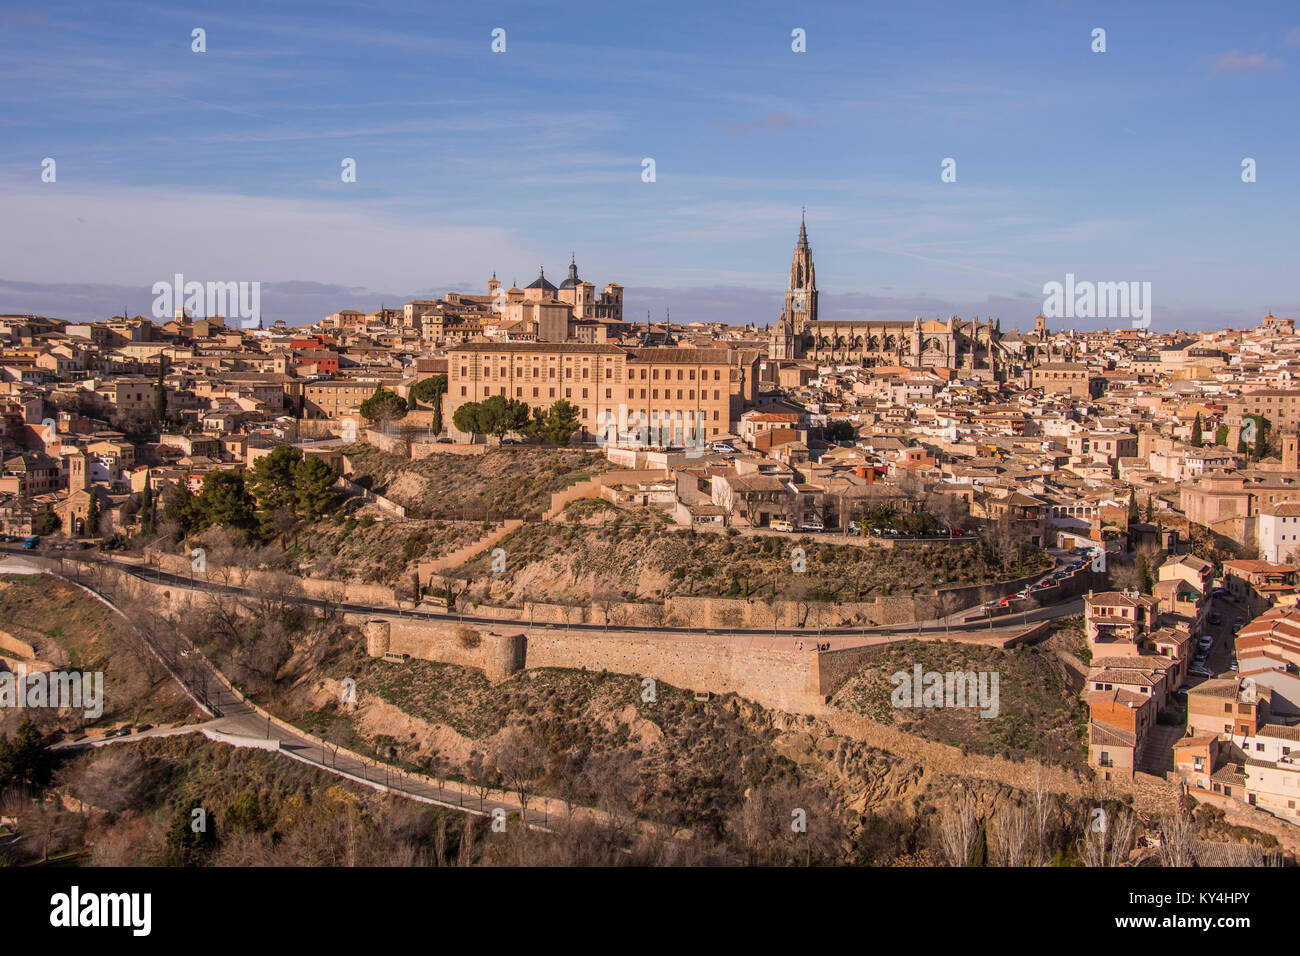 Panoramic view of the city walls of Toledo, medieval buildings and Saint Mary's Cathedral. Spain. Stock Photo